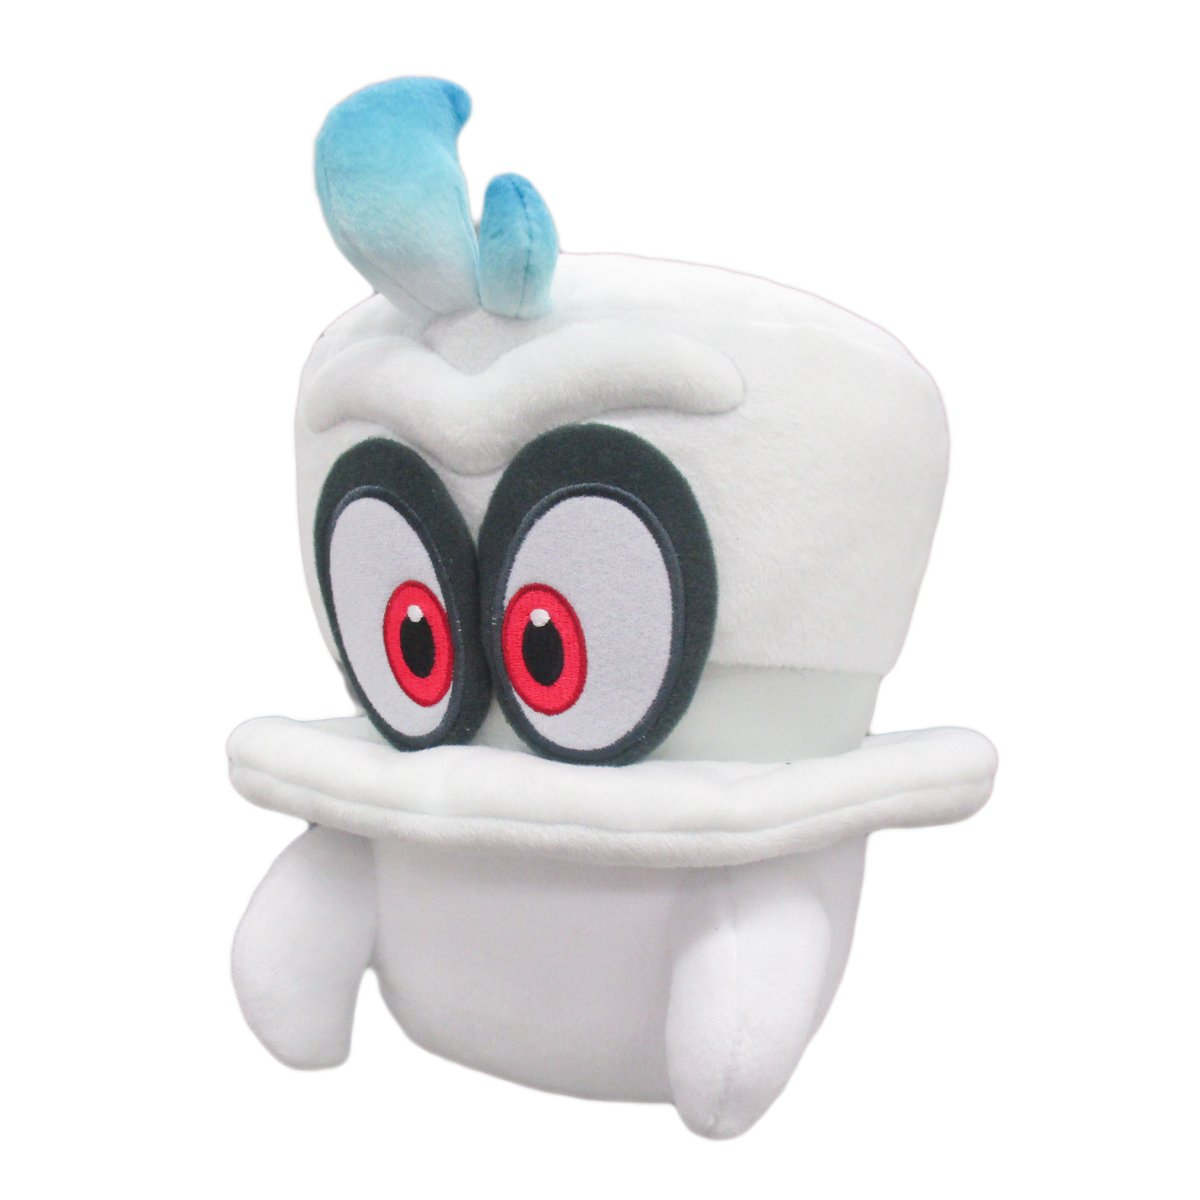 Super Mario Odysssey White Cappy (Normal Form) Plush by Sanei